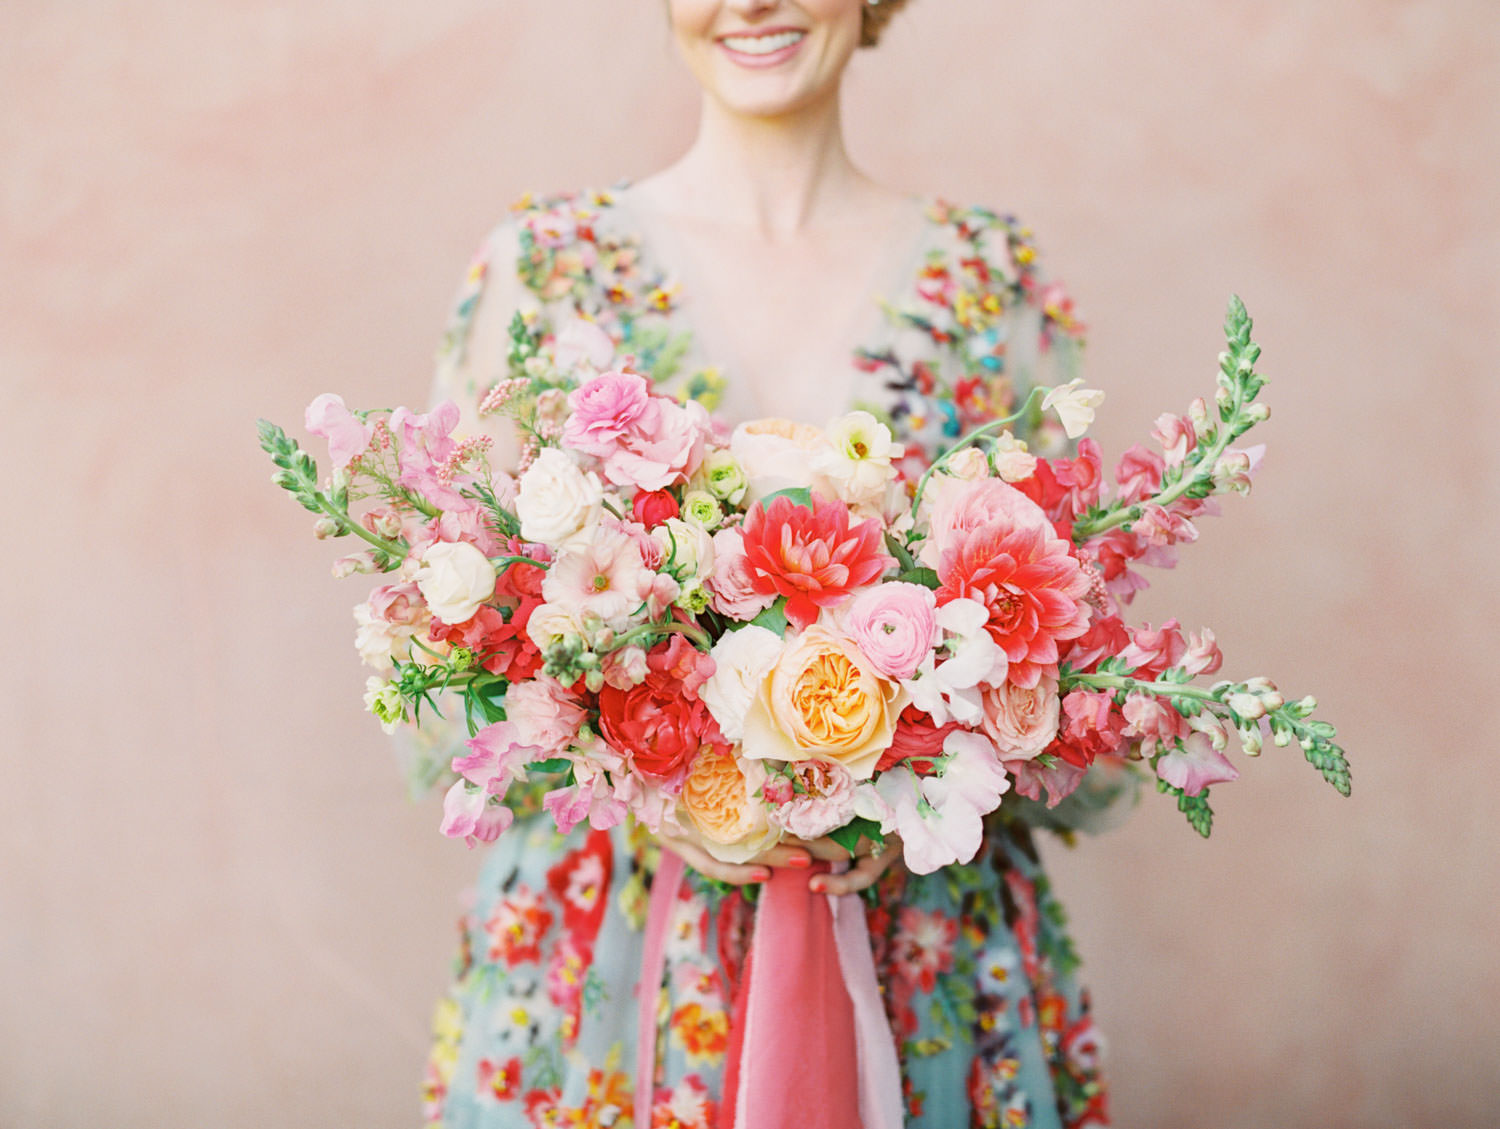 Bride wearing a Marchesa blue and pink floral long sleeve couture gown with floral appliques. Large bridal bouquet of mostly pink tones roses, peonies, ranunculus, and sweet peas with long bright pink and blush and mauve silk ribbons. Fairmont Grand del Mar wedding published on Martha Stewart Weddings